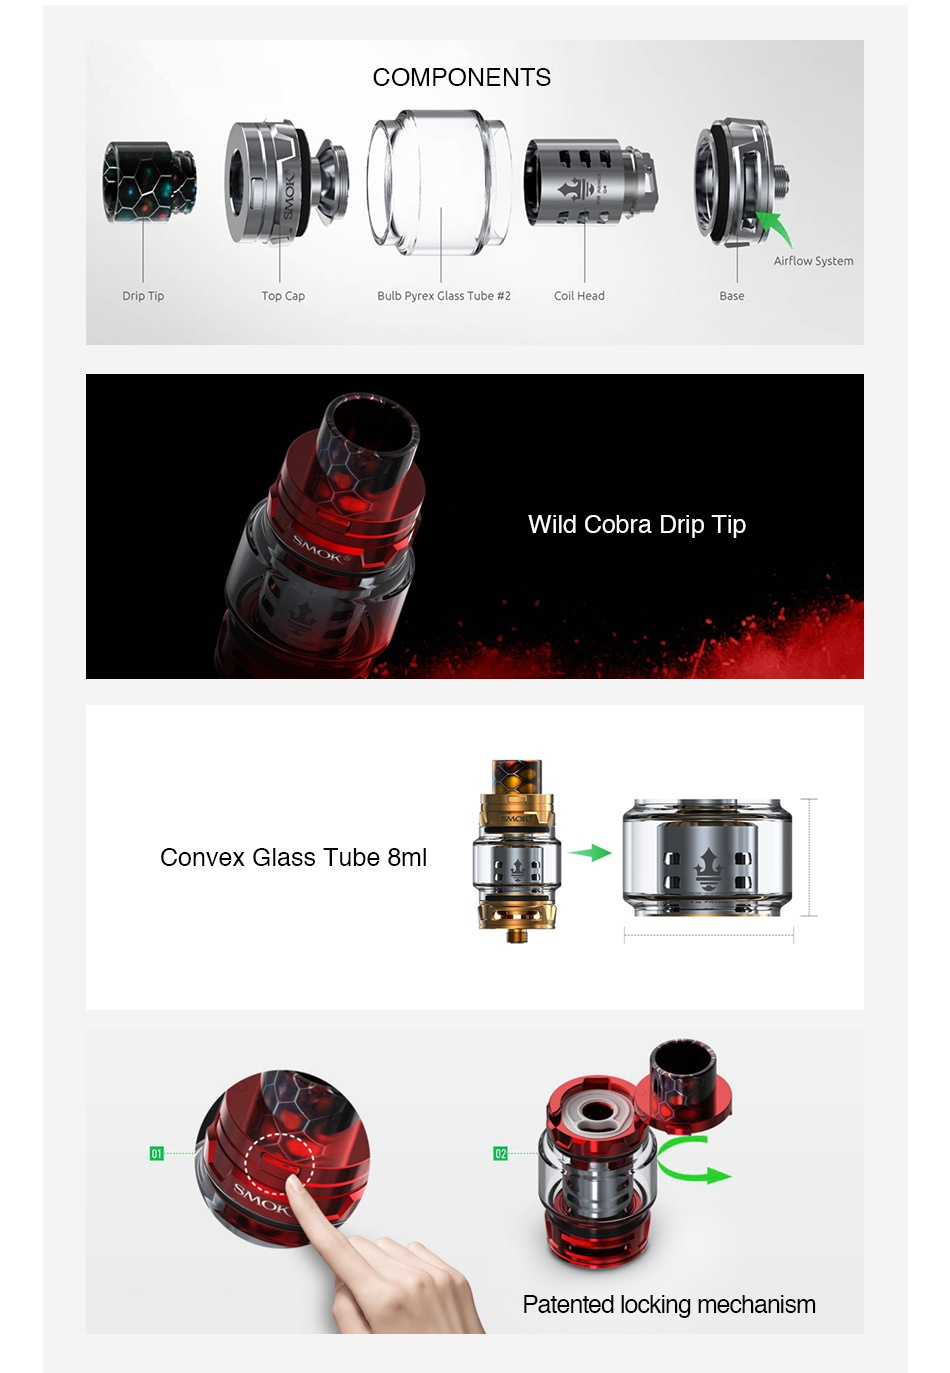 SMOK TFV12 PRINCE Cloud Beast Tank 8ml/2ml COMPONENTS Drip Tip Top Cap Bulb Pyrex Glass Tube  2 Coil Head Base Wild cobra Drip Tip Convex glass tube 8n 02 Patented locking mechanism